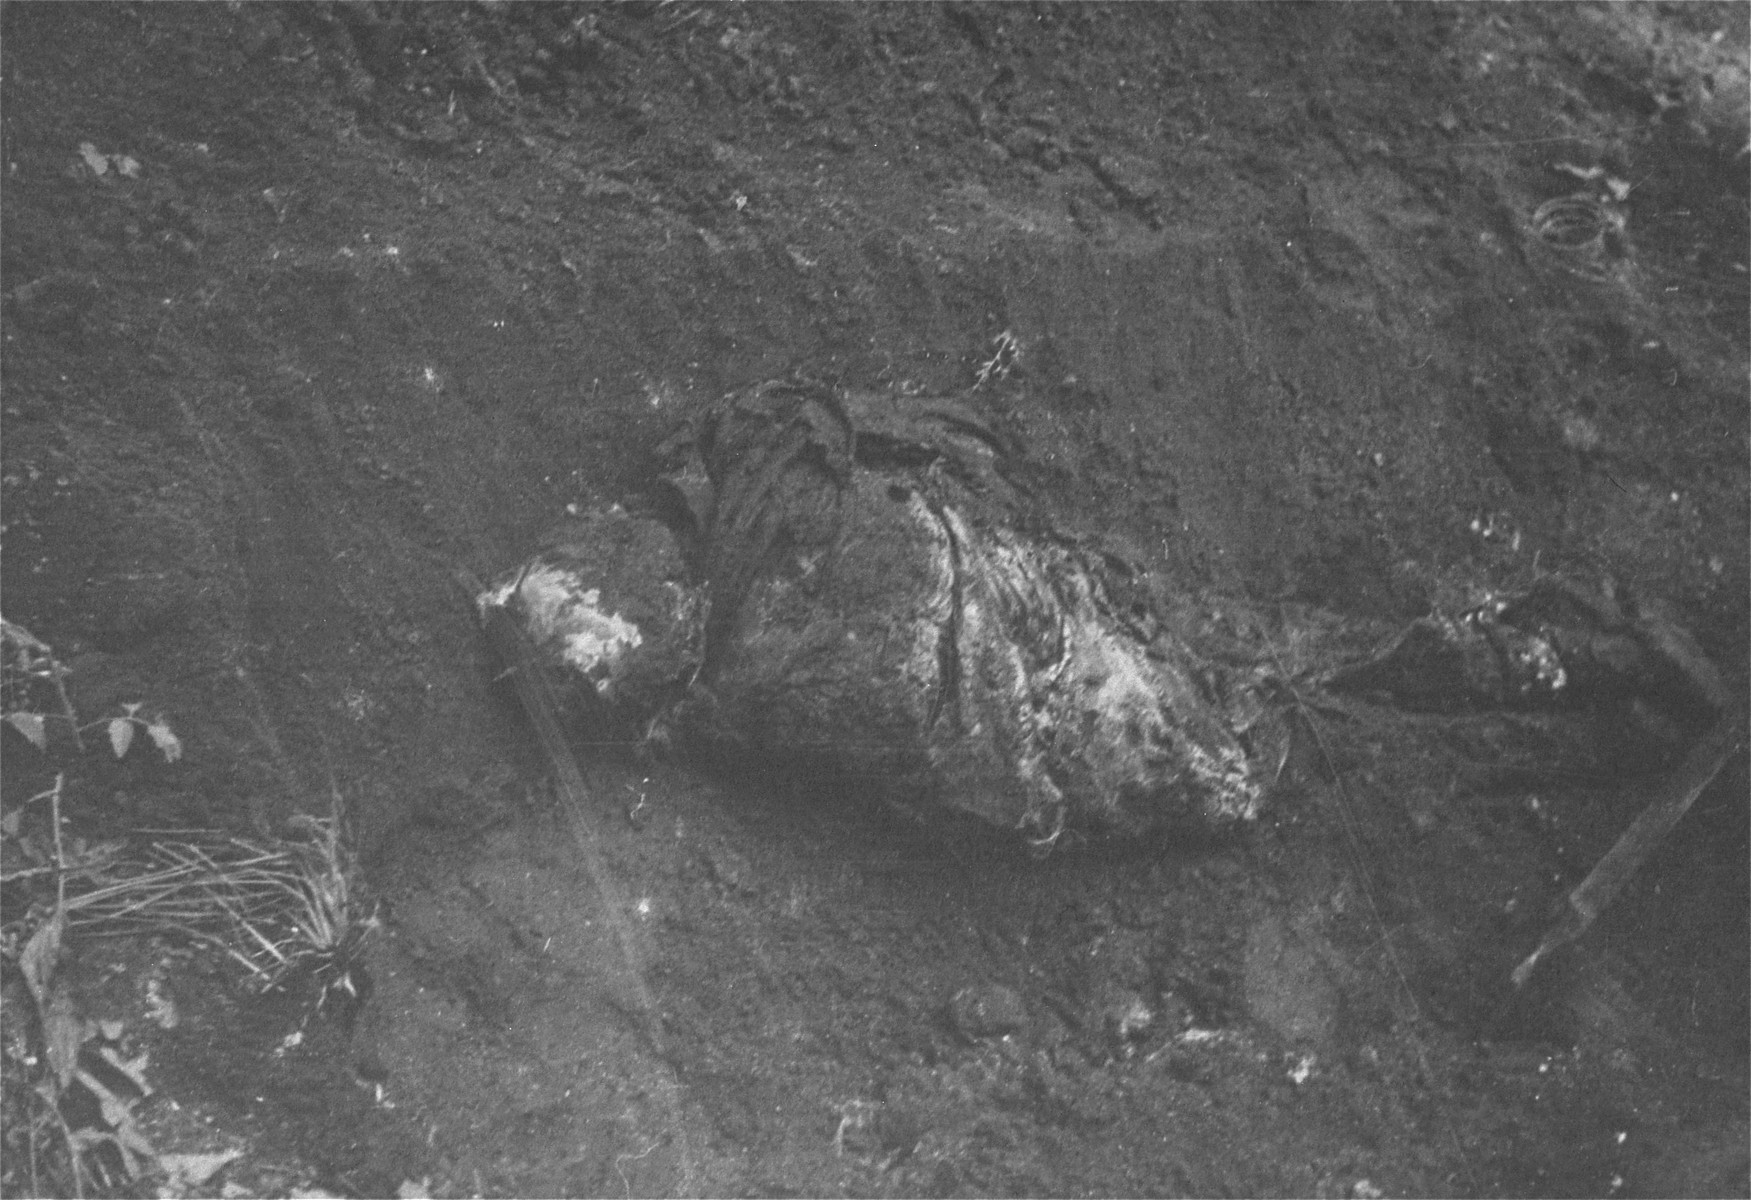 A body found in the ruins of the Warsaw ghetto.